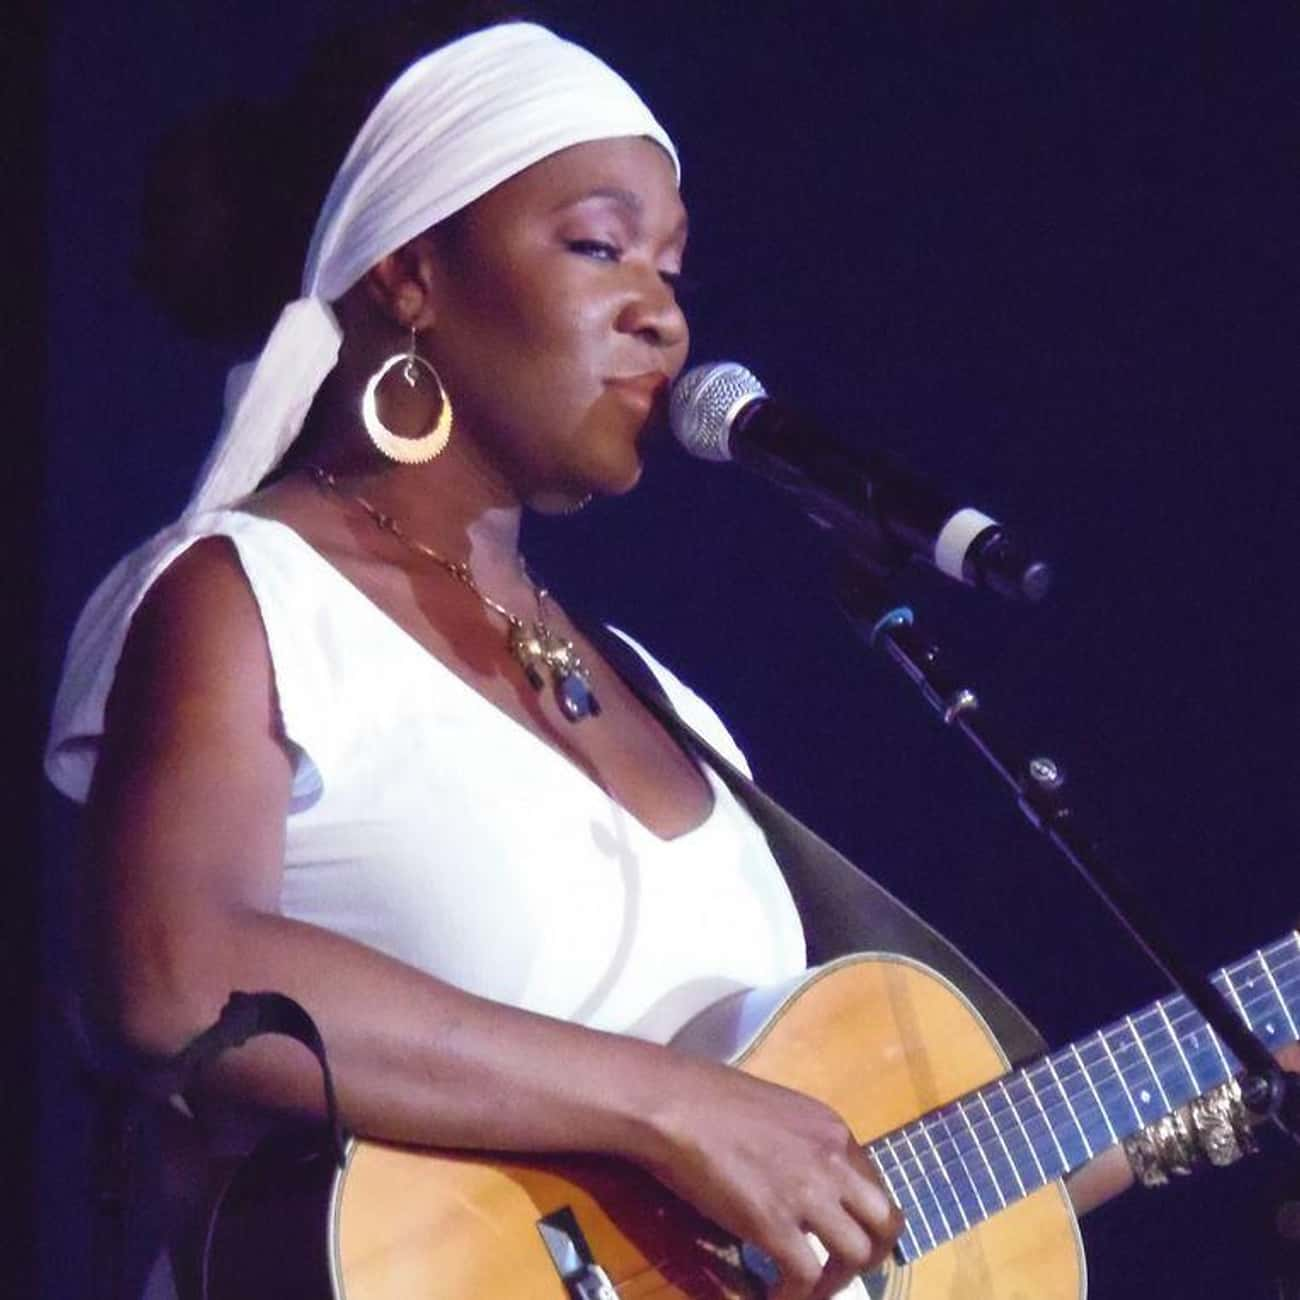 India.Arie is listed (or ranked) 1 on the list Famous Female Flautists